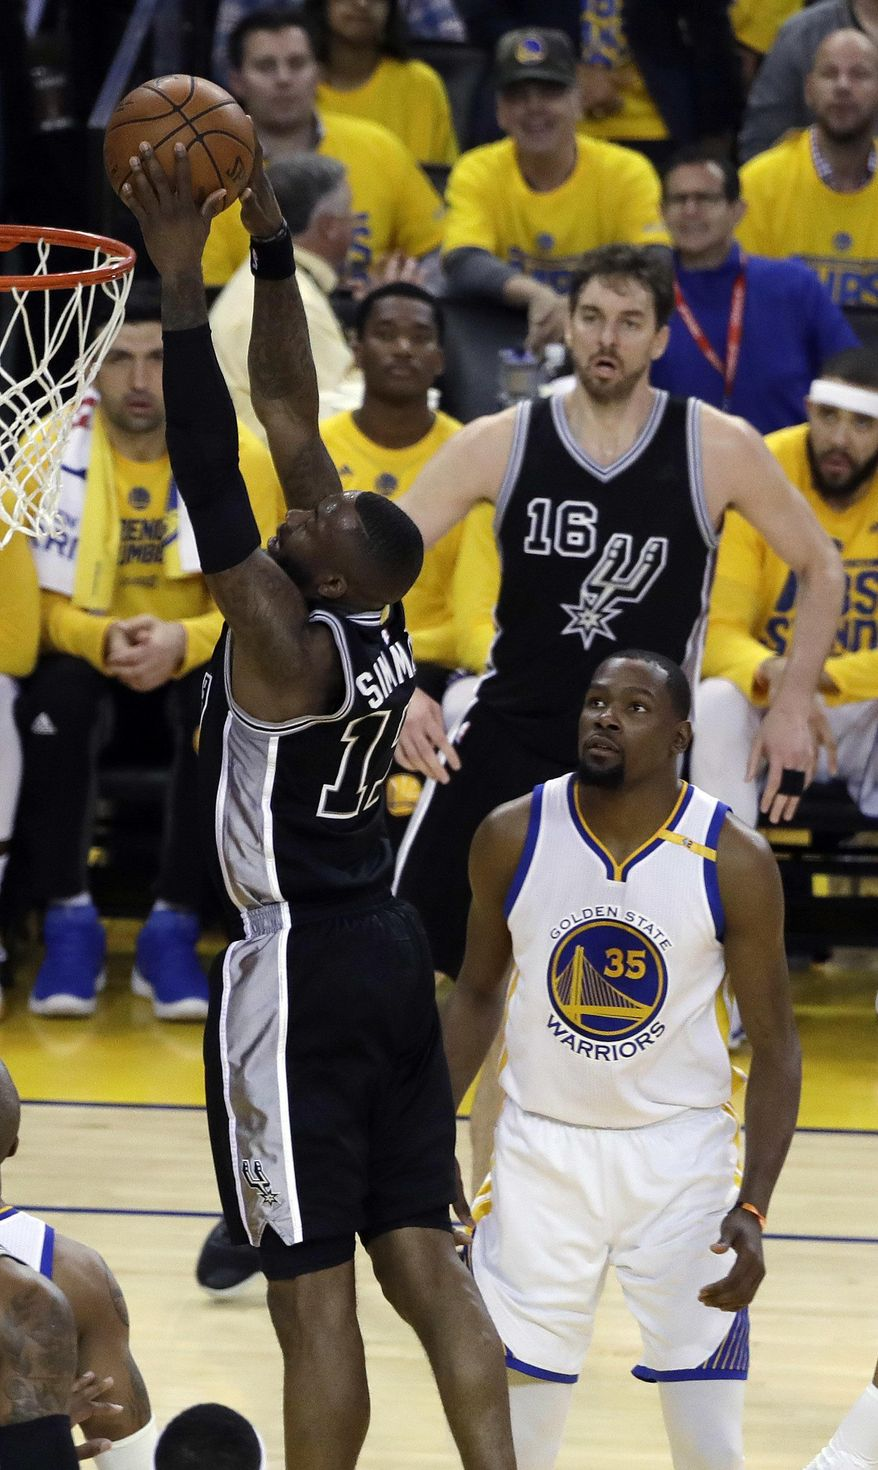 San Antonio Spurs' Jonathon Simmons, left, dunks past Golden State Warriors' Kevin Durant (35) during the first half of Game 2 of the NBA basketball Western Conference finals, Tuesday, May 16, 2017, in Oakland, Calif. (AP Photo/Marcio Jose Sanchez)